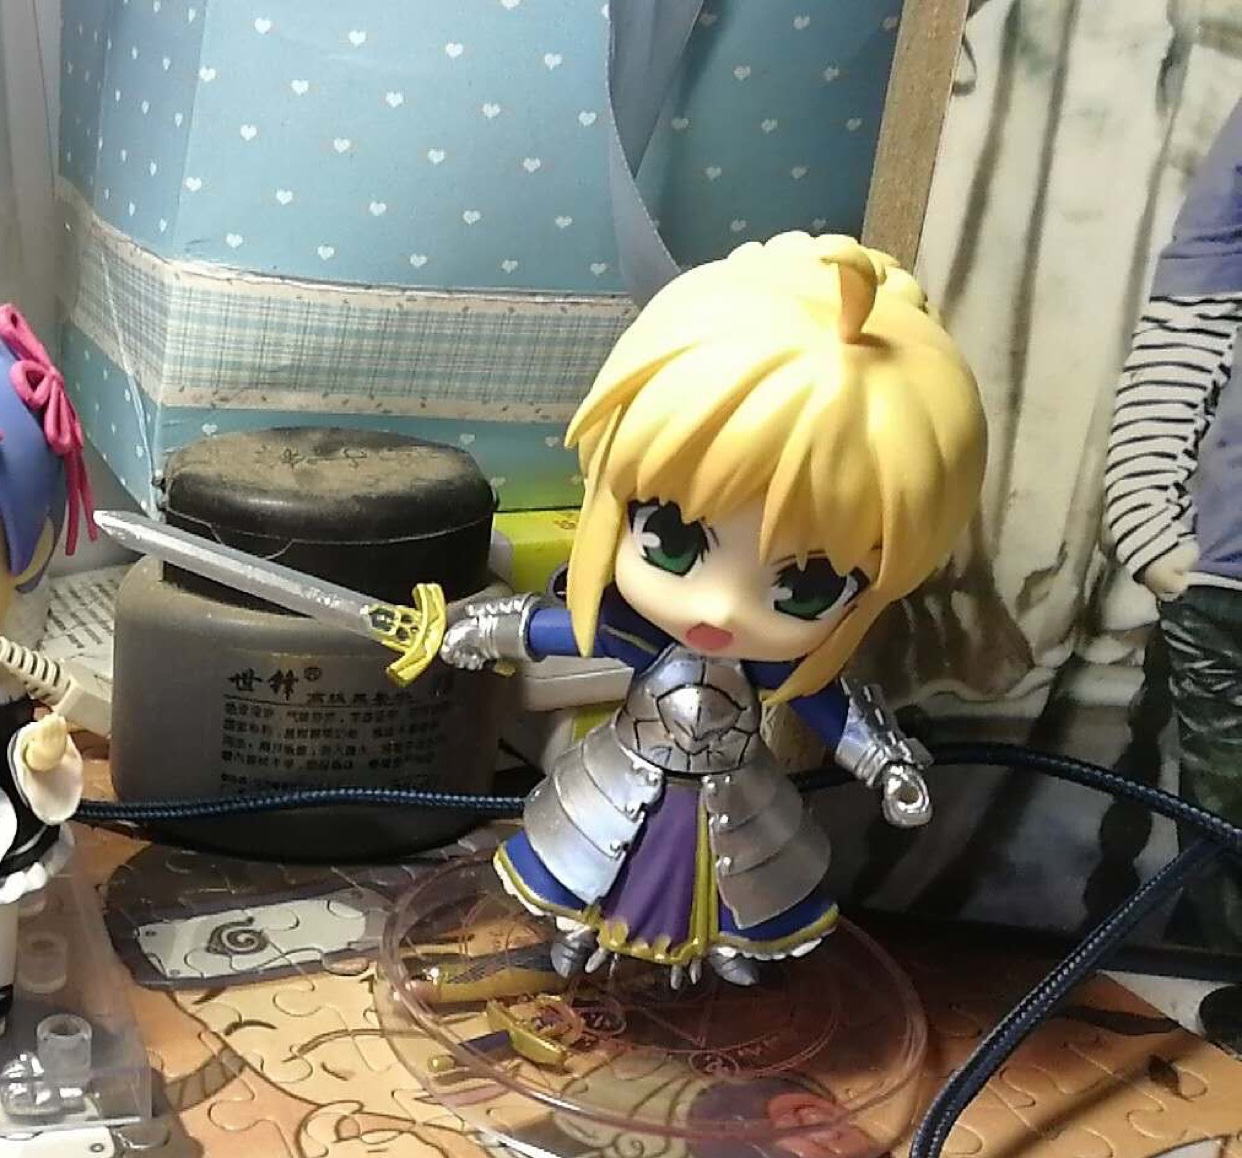 Fate/EXTRA saber Tōsaka Rin Wedding dress Anime Garage Kits Dolls Figure Statue-Garage Kit Dolls